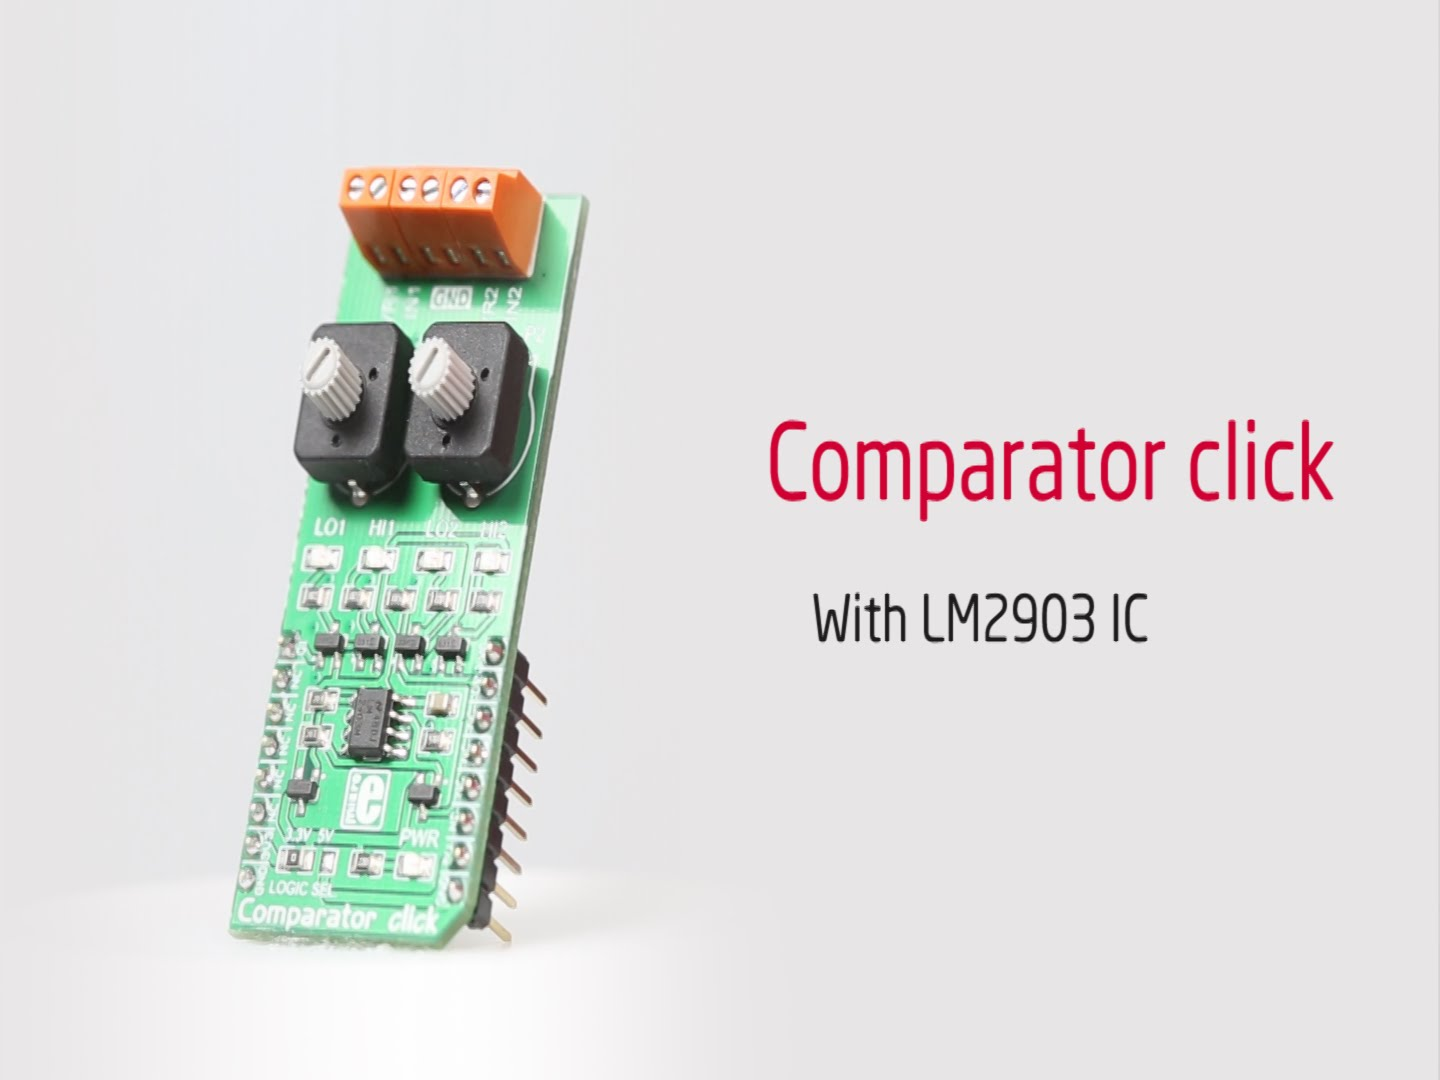 Comparator click released